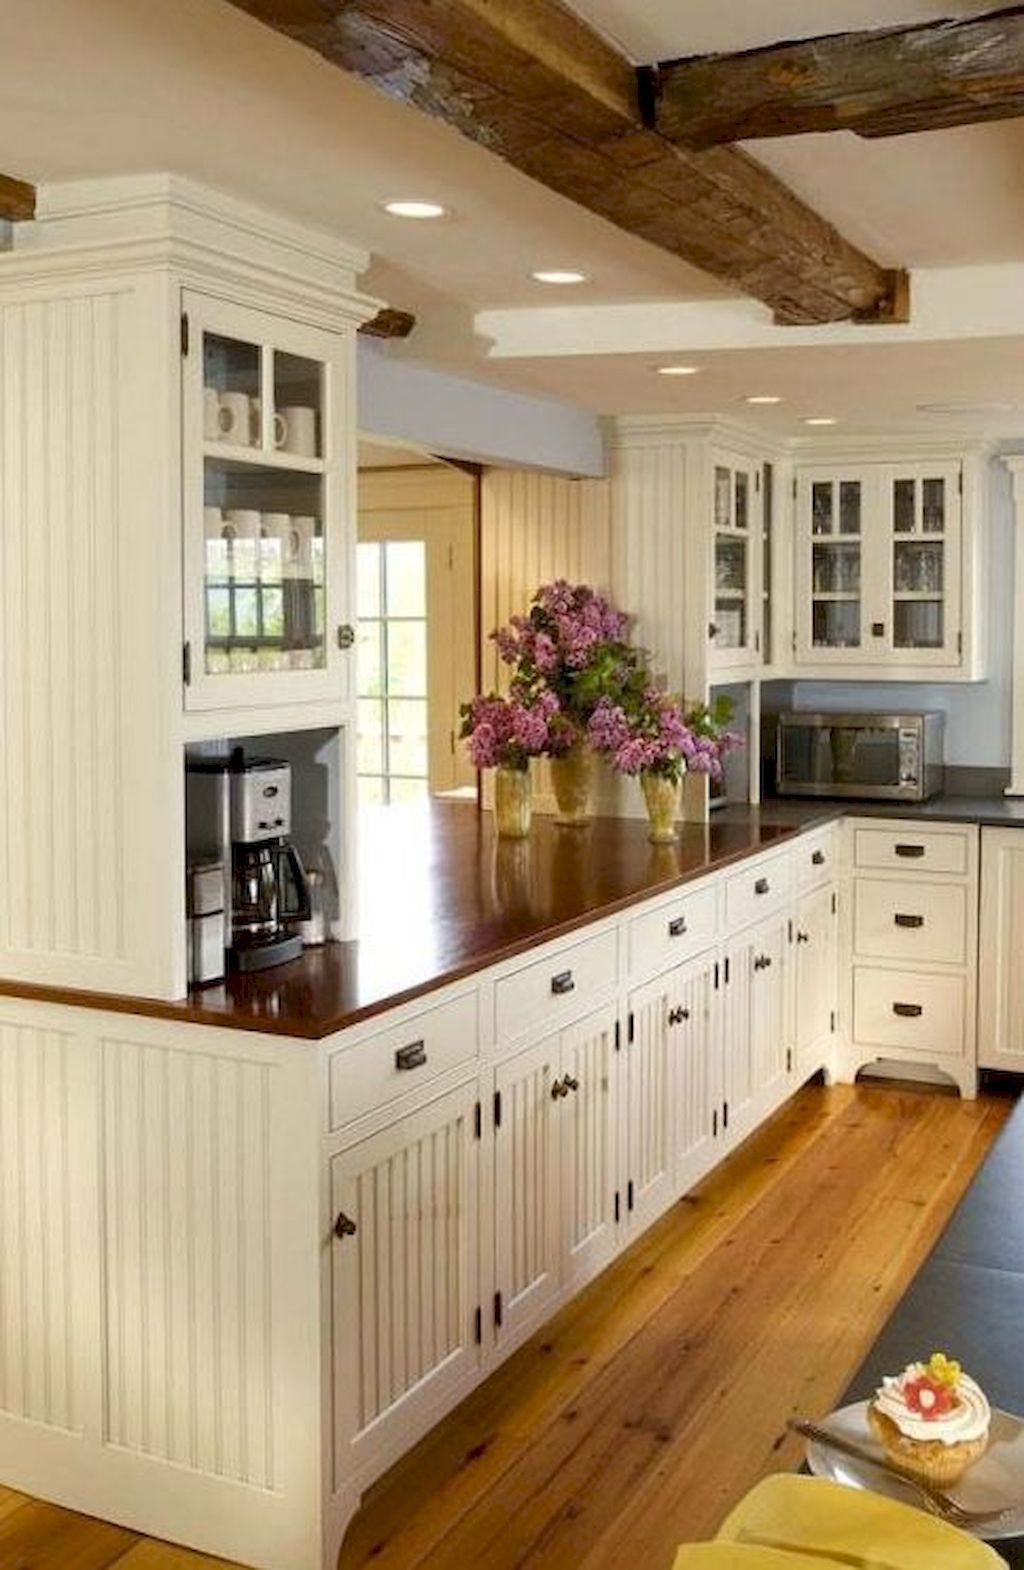 Modern farmhouse kitchen cabinet ideas kitchen remodel